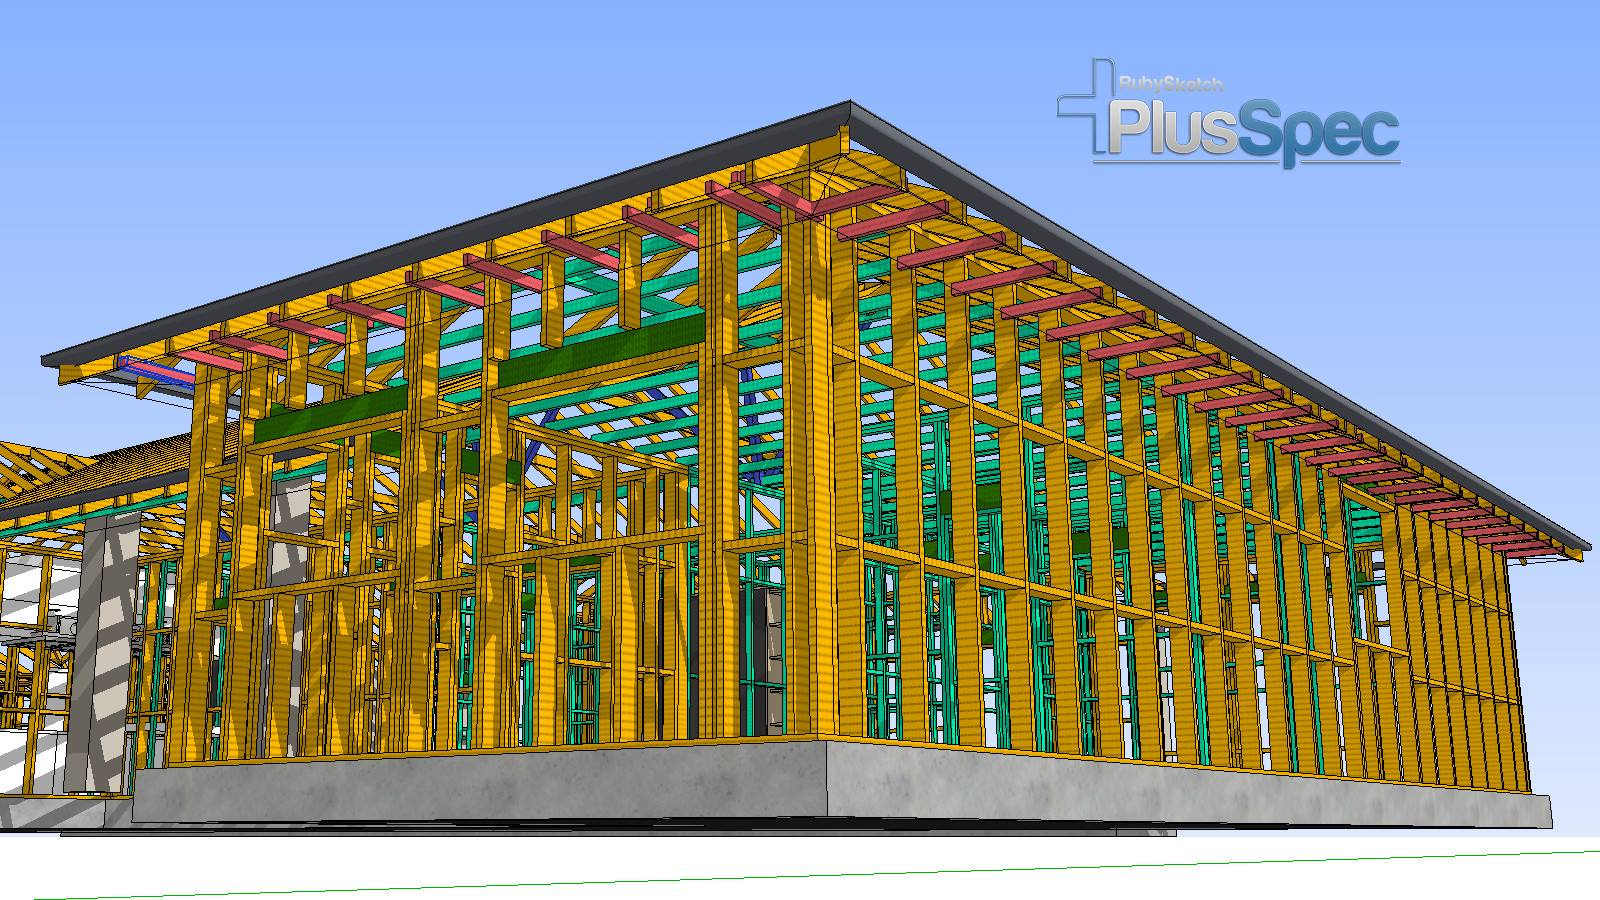 PlusSpec design building structure